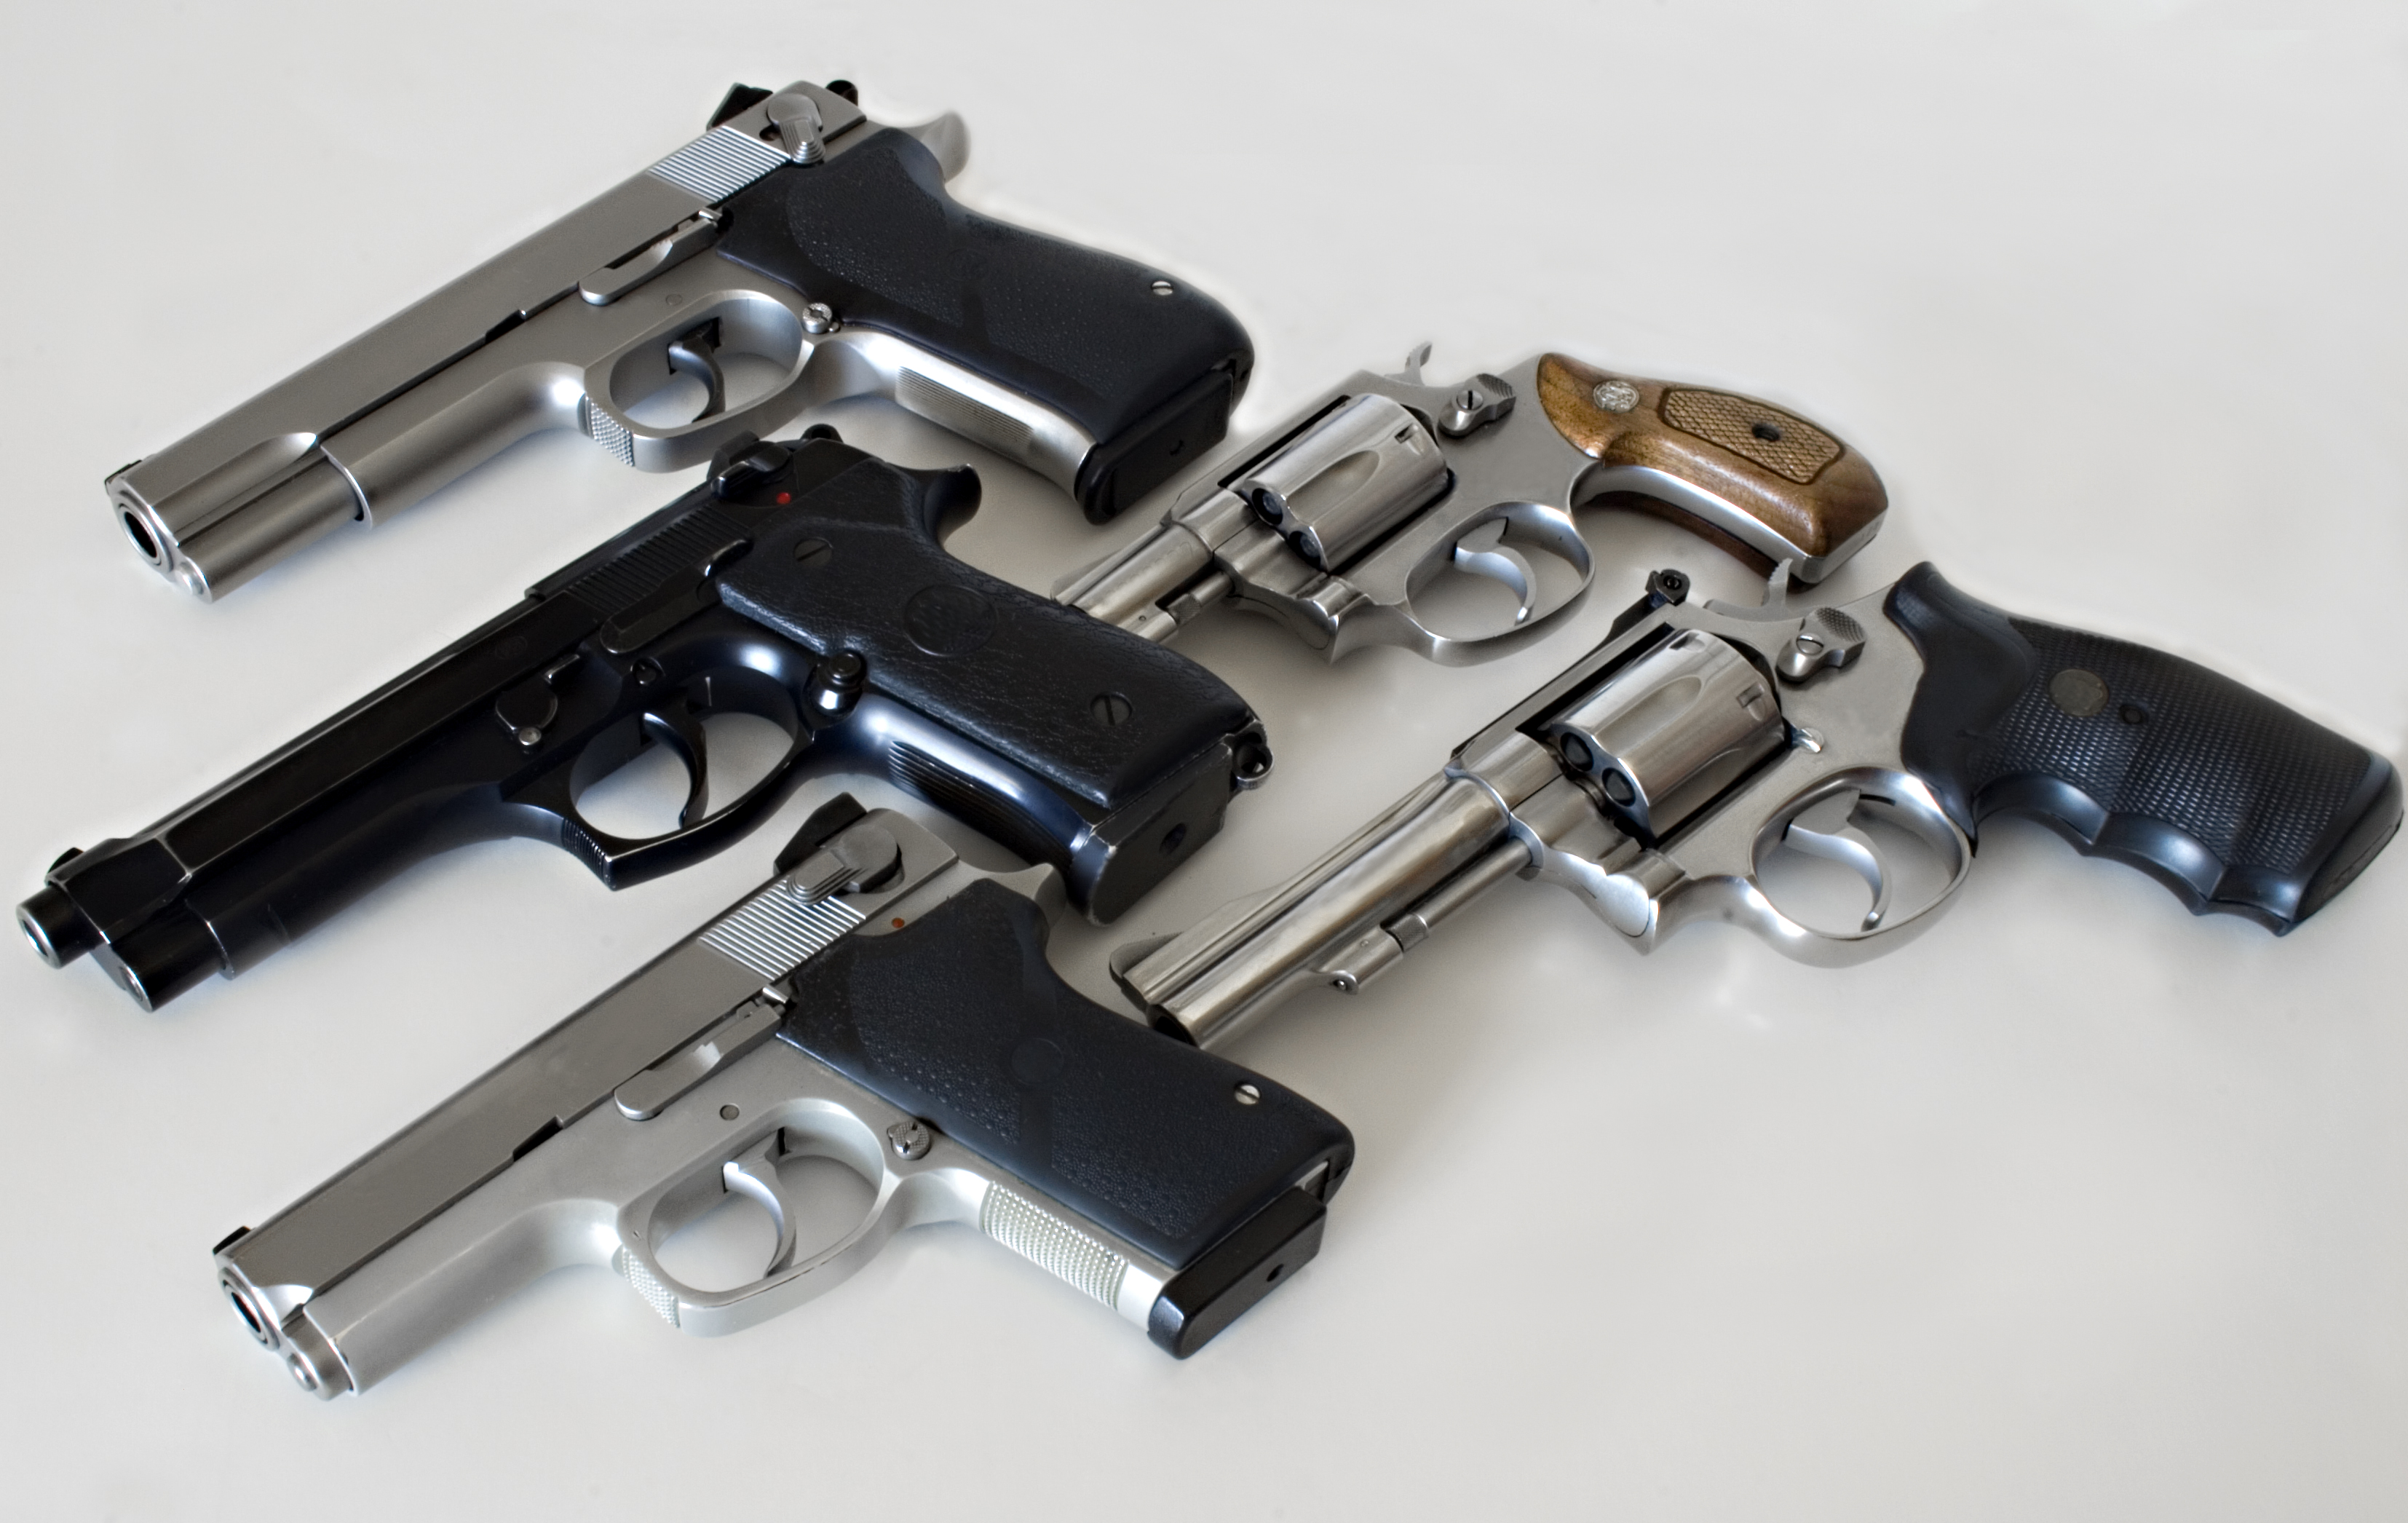 Arsenal of a typical police officer. All logos and trademarks have been removed.